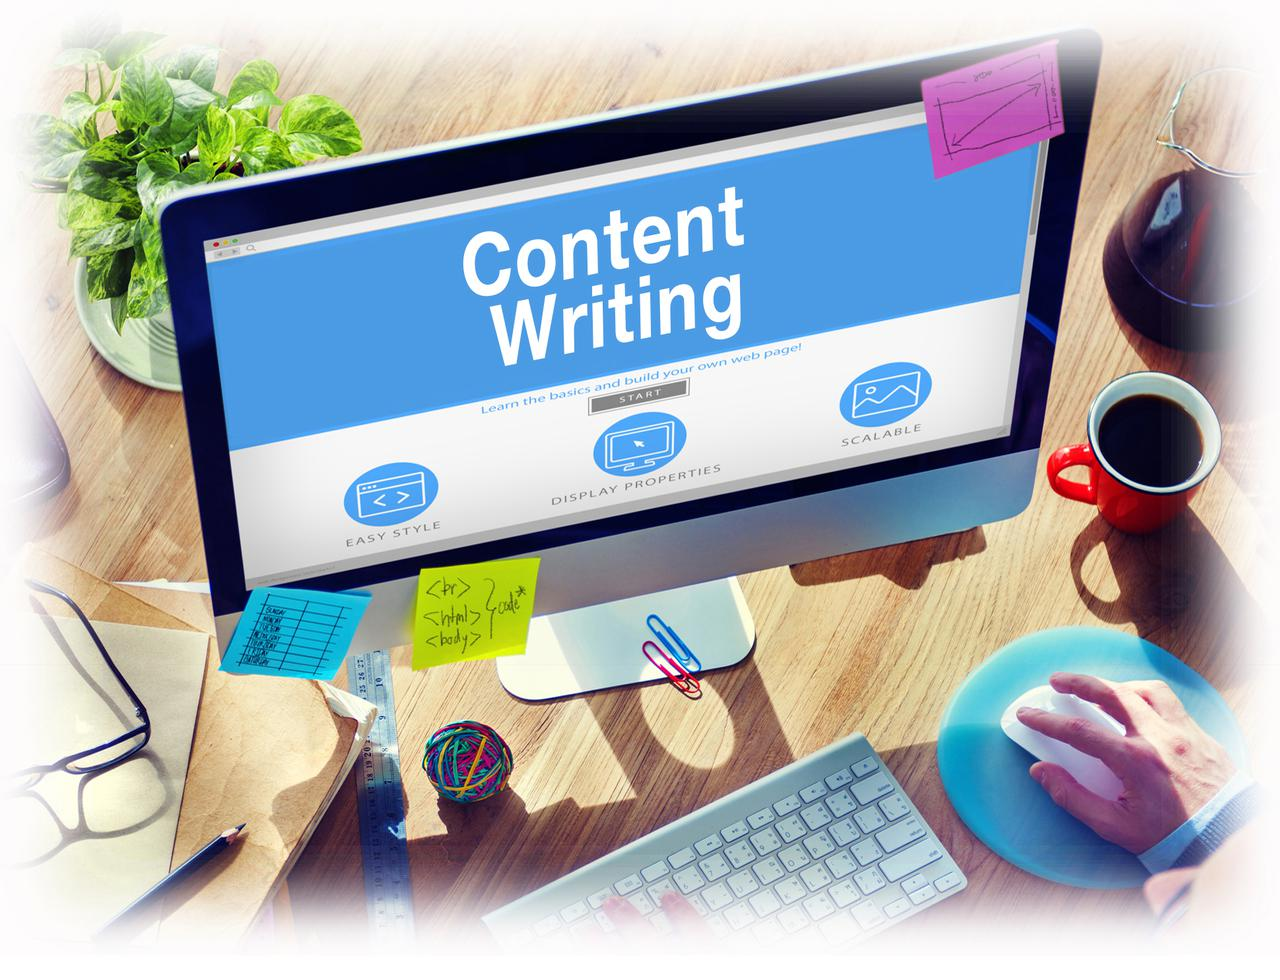 computer image - content writing.jpg